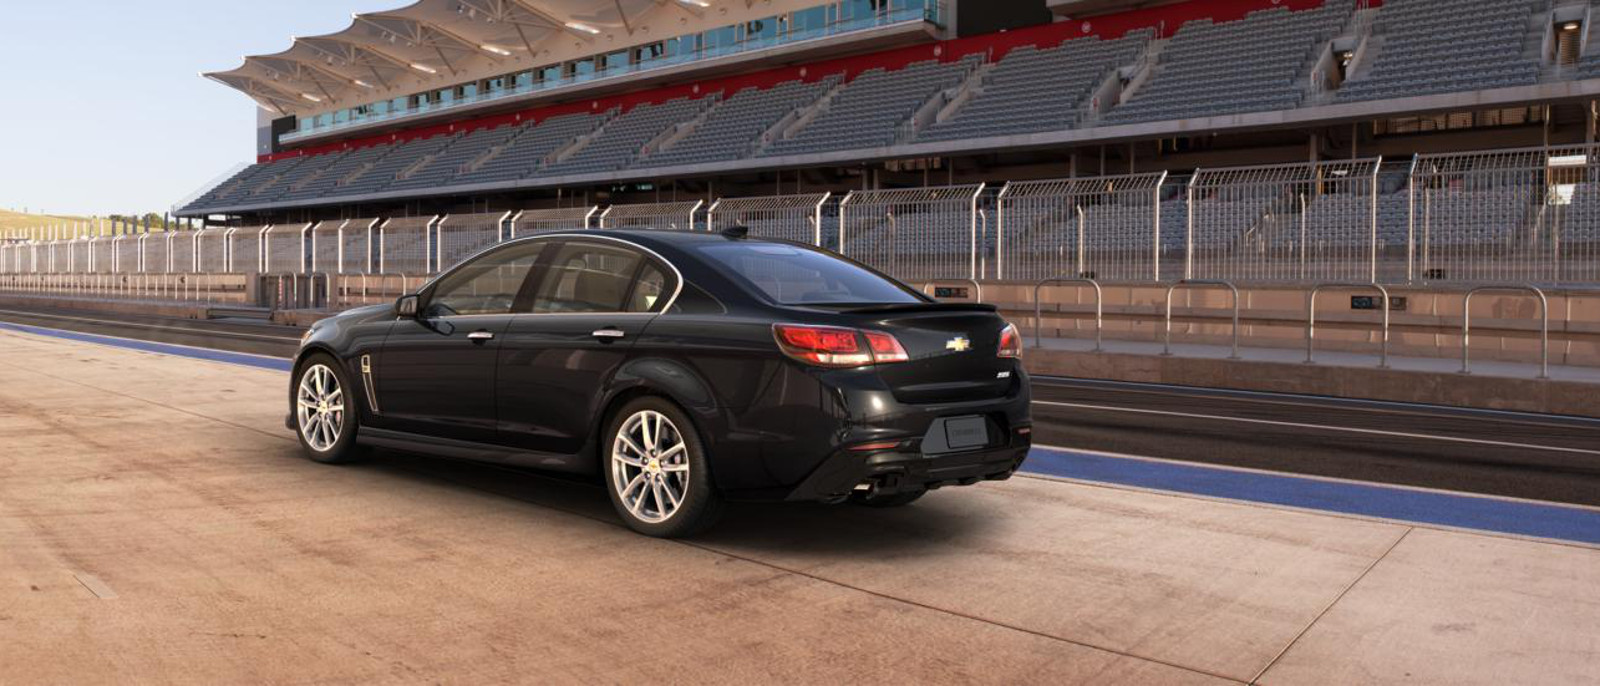 2015 Chevrolet SS profile view